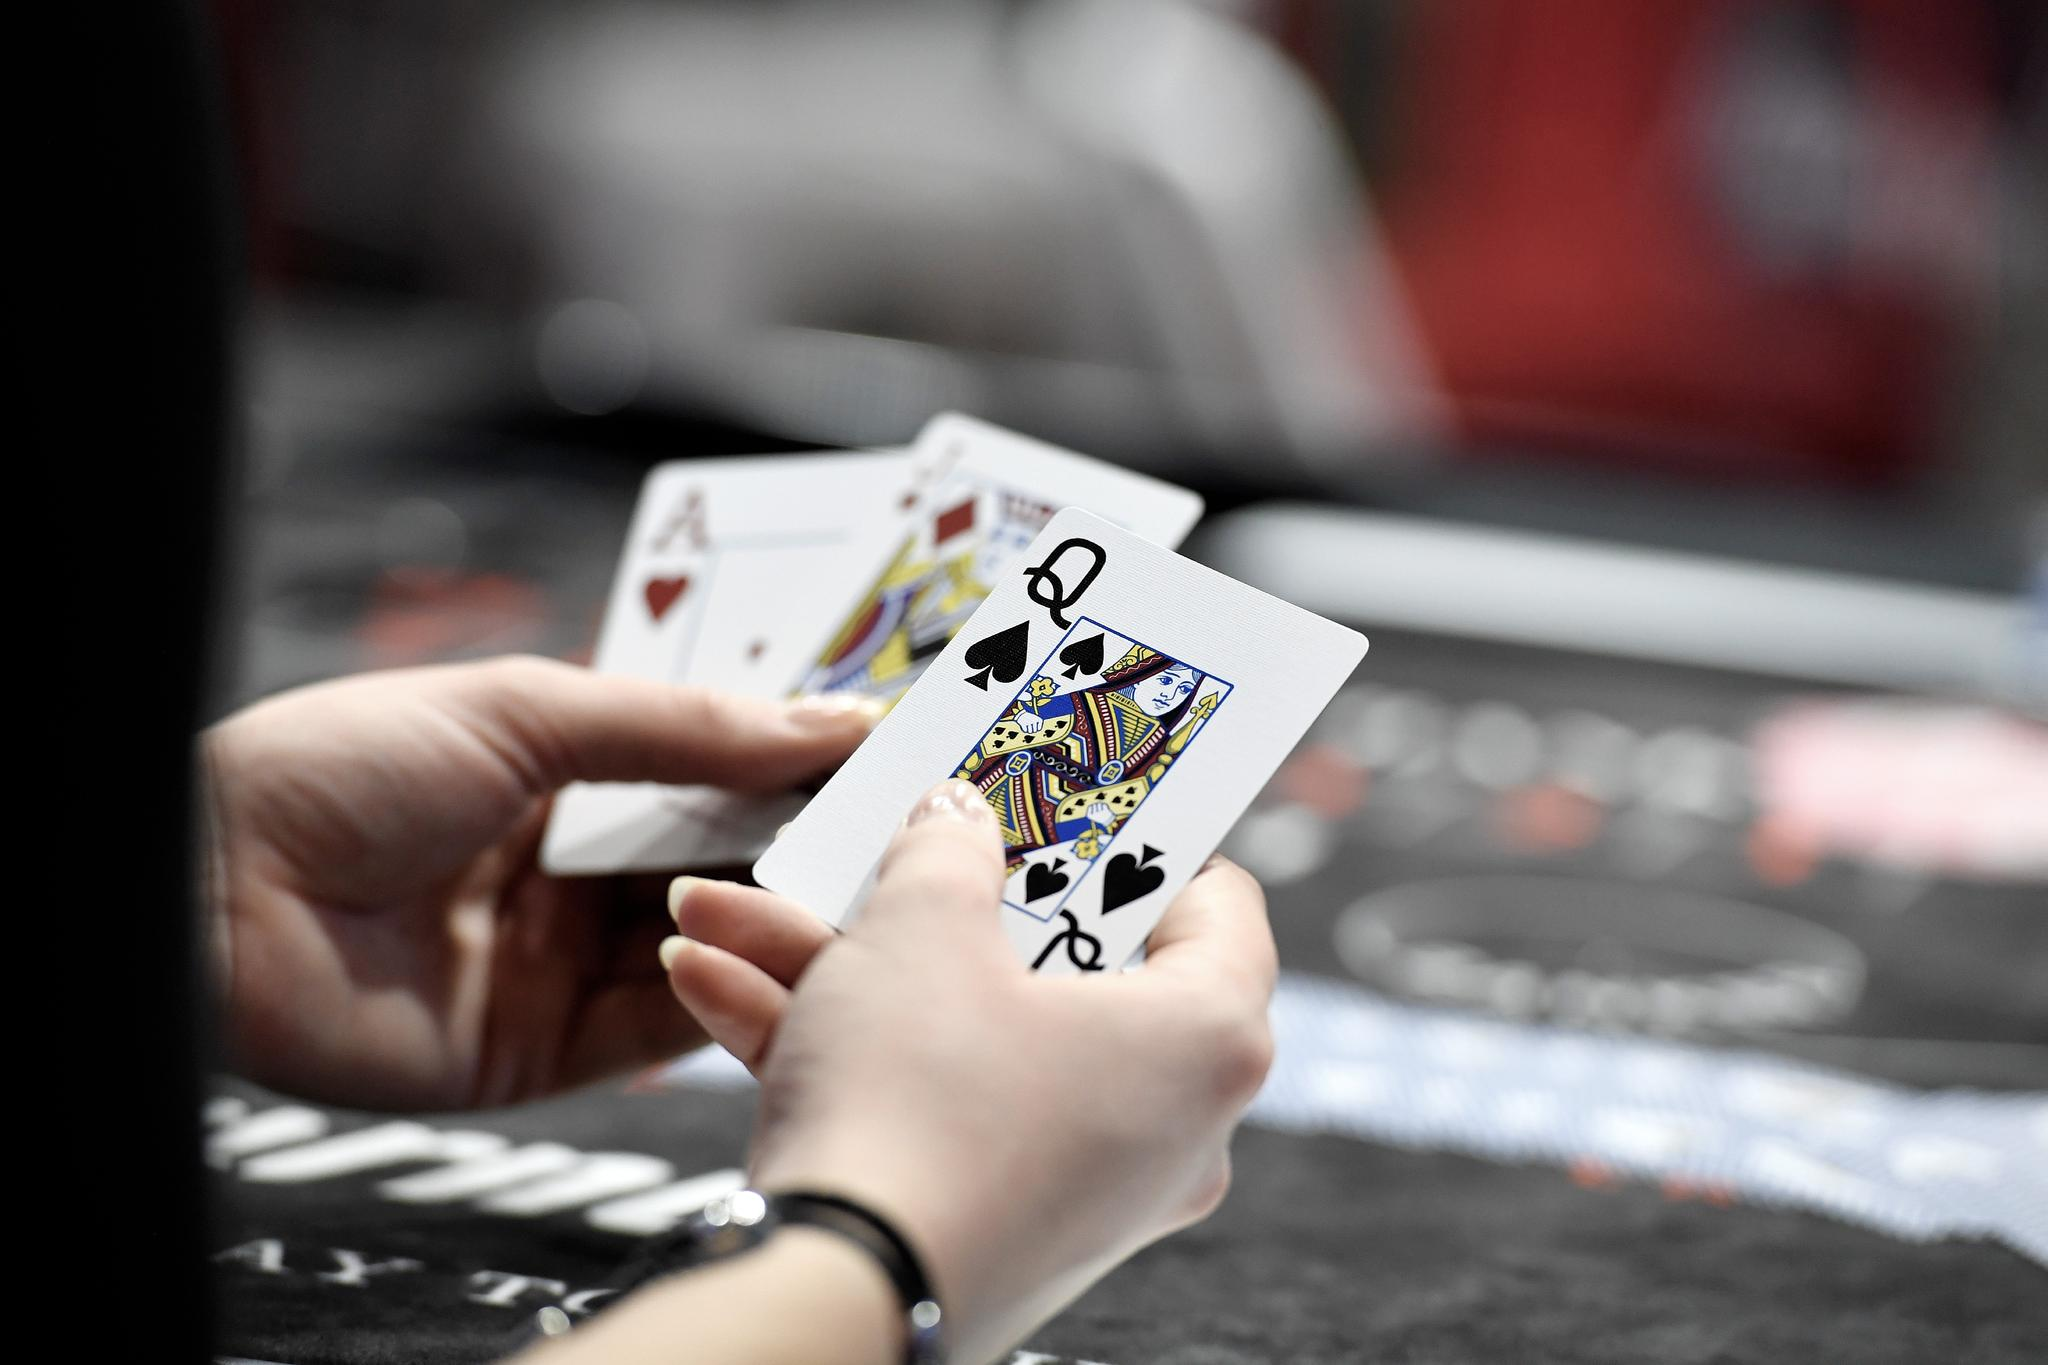 Pop-up talks on Responsible Gambling